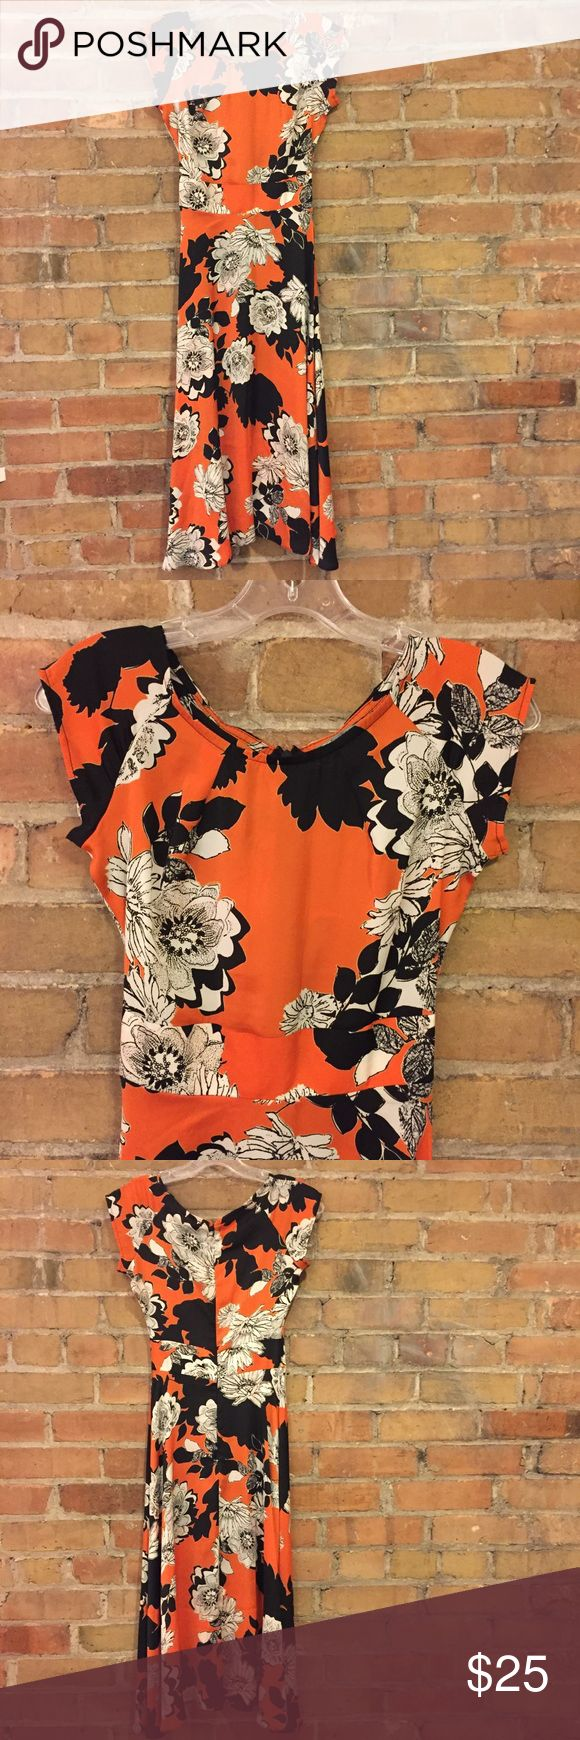 """ASOS """"Love Midi Skater Dress in Mono Floral Print"""" Super cute, lightweight, & floaty! Measurements (taken flat!) are: 15"""" armpit to armpit along back, 13"""" from shoulder to top waistband seam or 15"""" to bottom seam, 12"""" waist with no give, 44"""" total length from shoulder to hem. If I could wear this without having to remove two ribs, I'd keep it for sure. But that waist measurement is no joke. If you have a 26"""" waist like me, good luck breathing, 25"""" you're prob ok all day except after lunch…"""